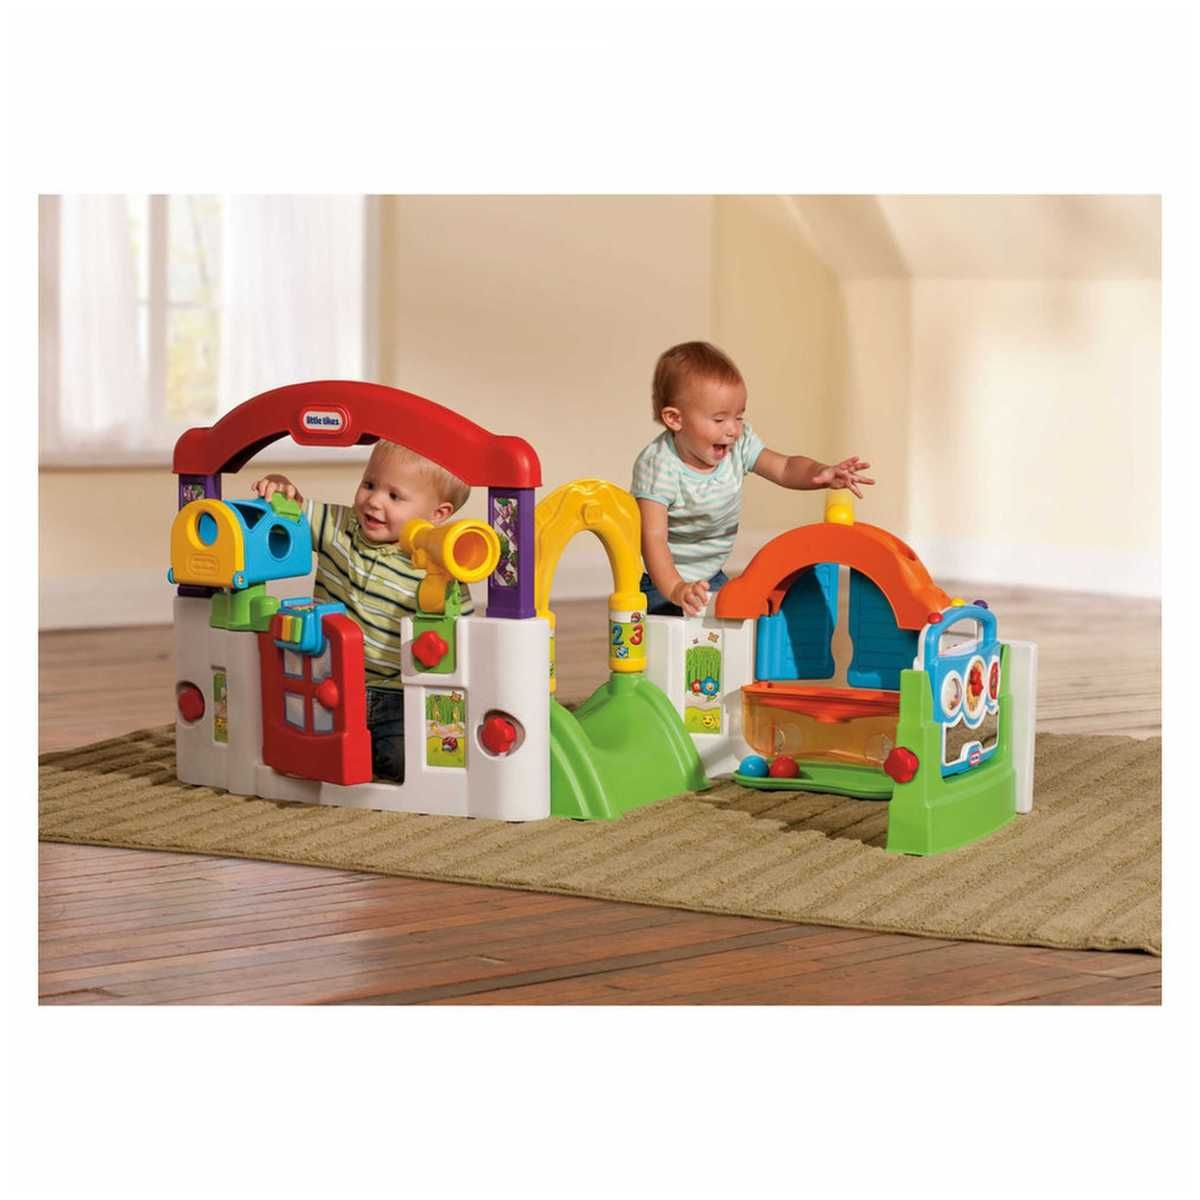 Little Tikes Storage Cabinet The Little Tikes Activity Garden Has A Variety Of Baby Toys And